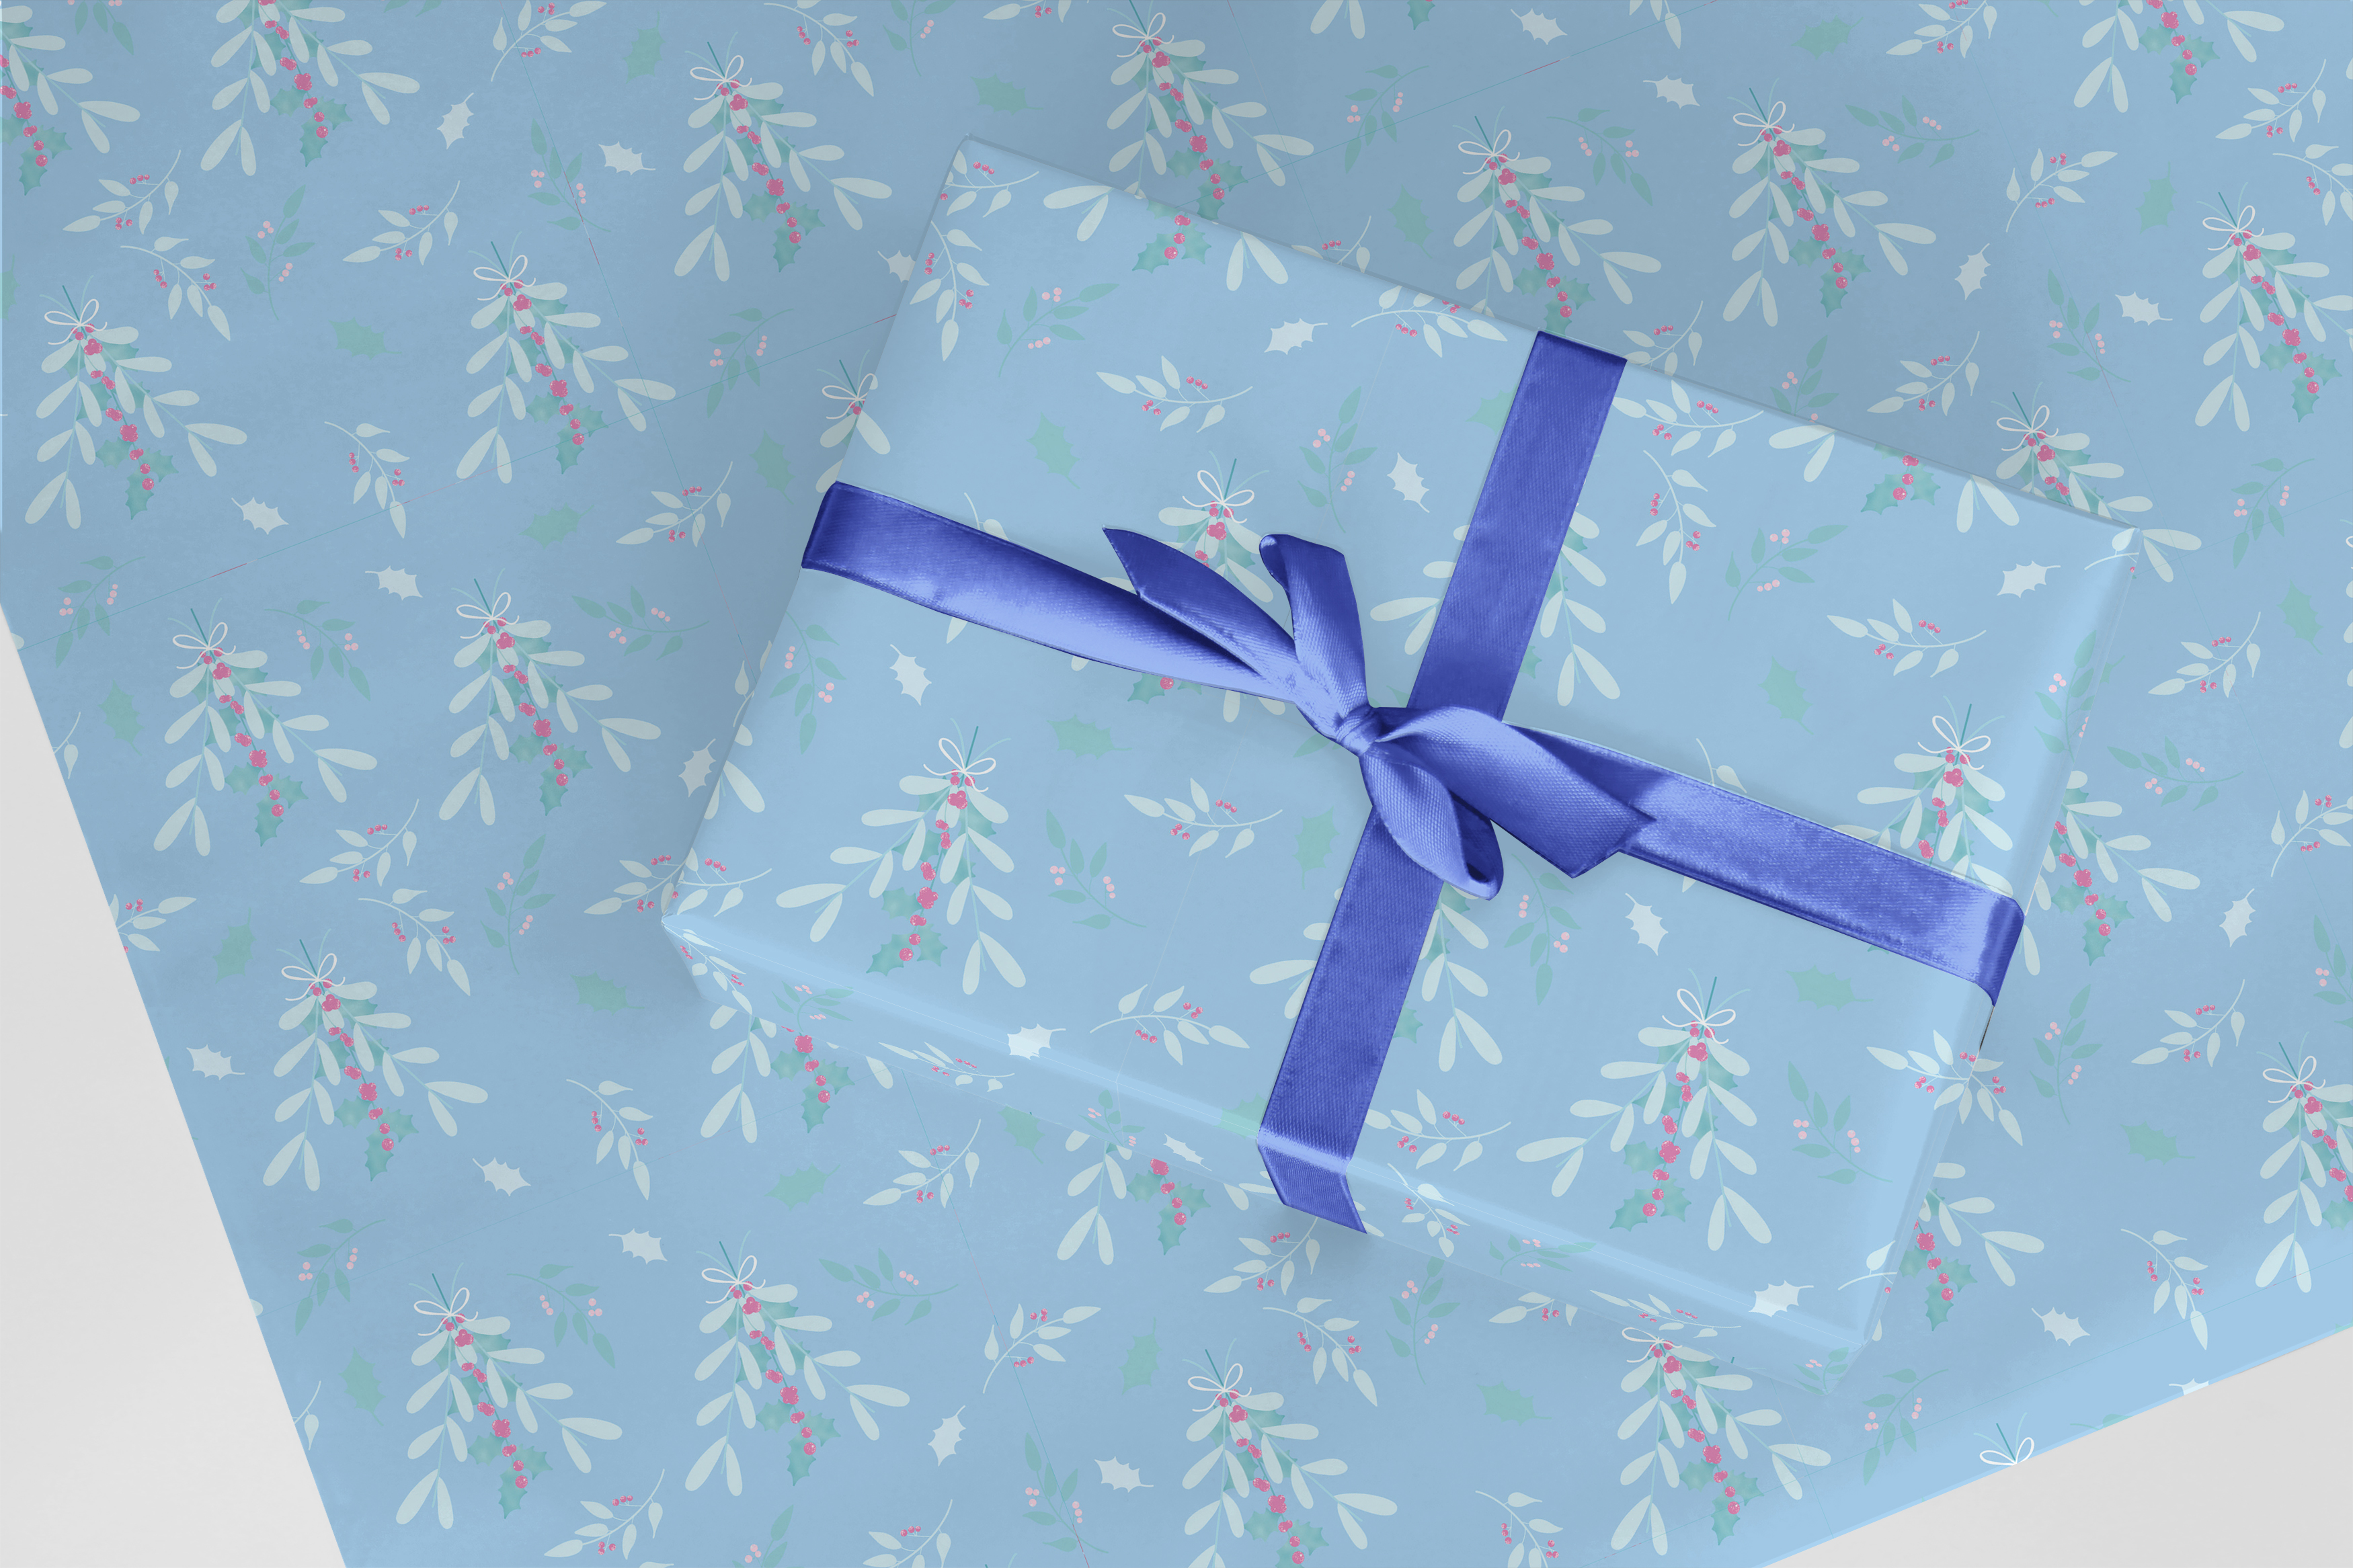 Curlicue's Mistletoe & Holly wrapping paper